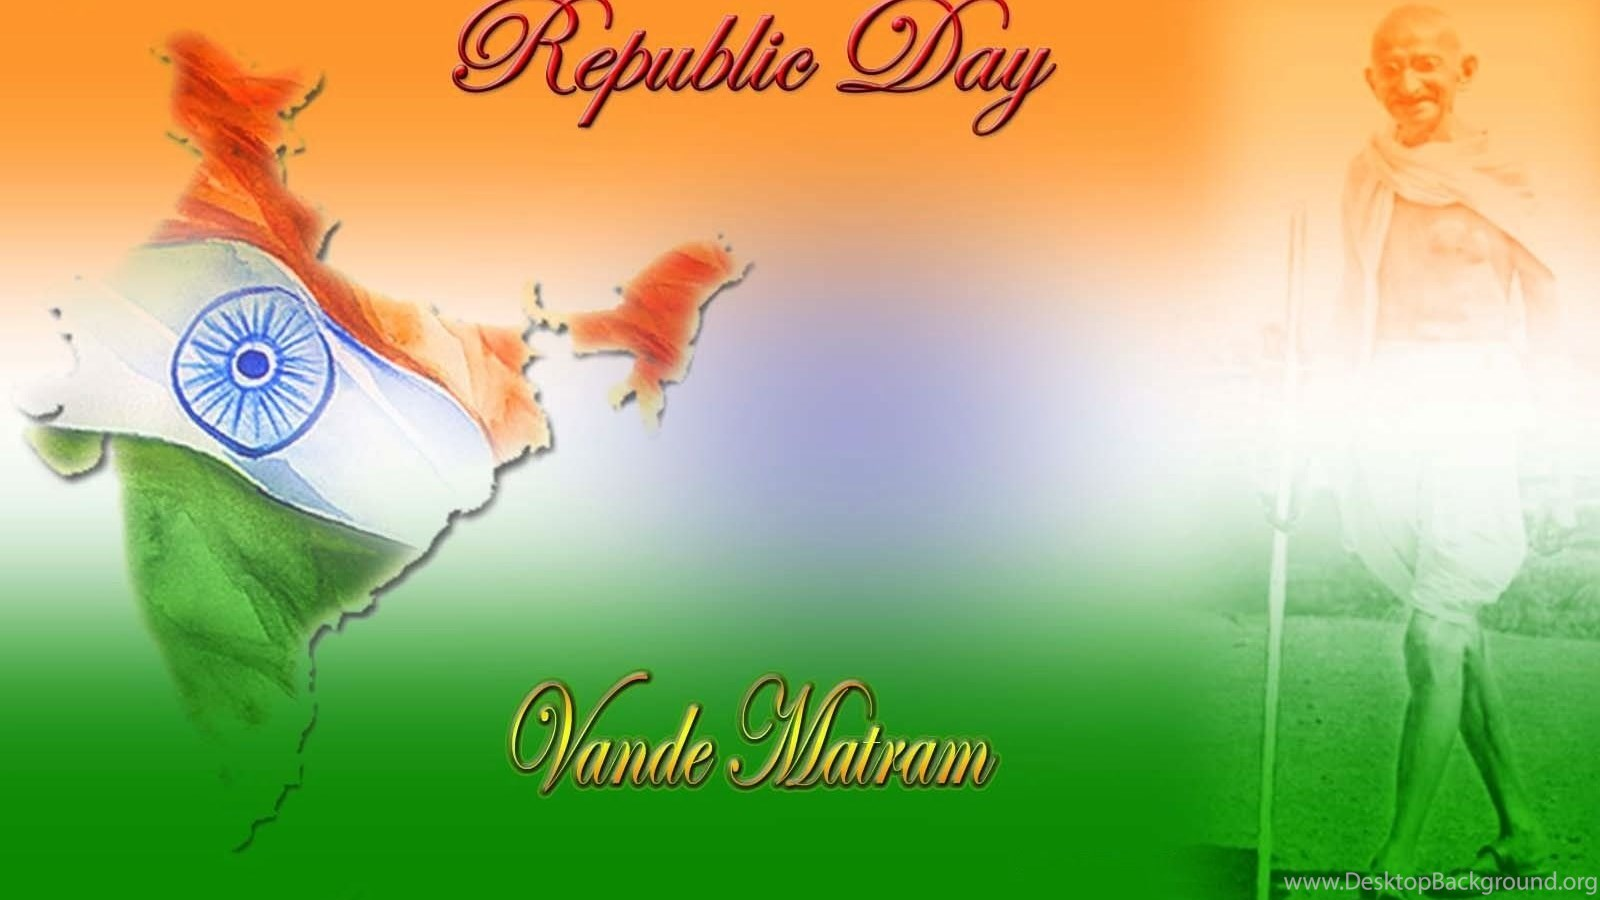 happy republic day hd wallpapers 2016 desktop background